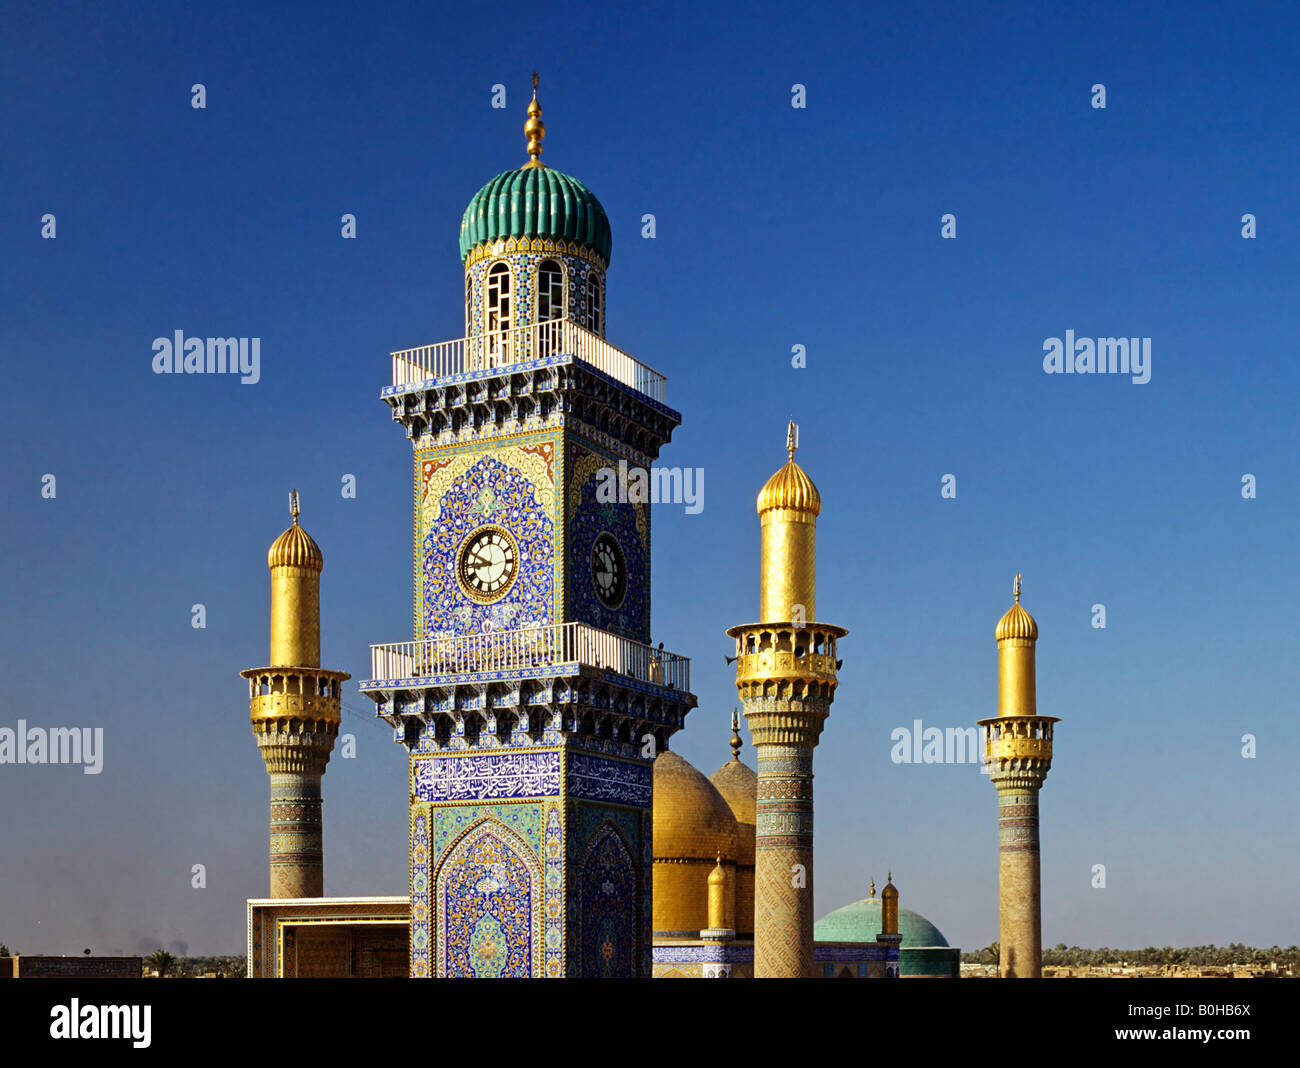 Goldene Uhr Stock Photos Goldene Uhr Stock Images Alamy Al Kadhimain Mosque Golden Towers Minaret Baghdad Iraq